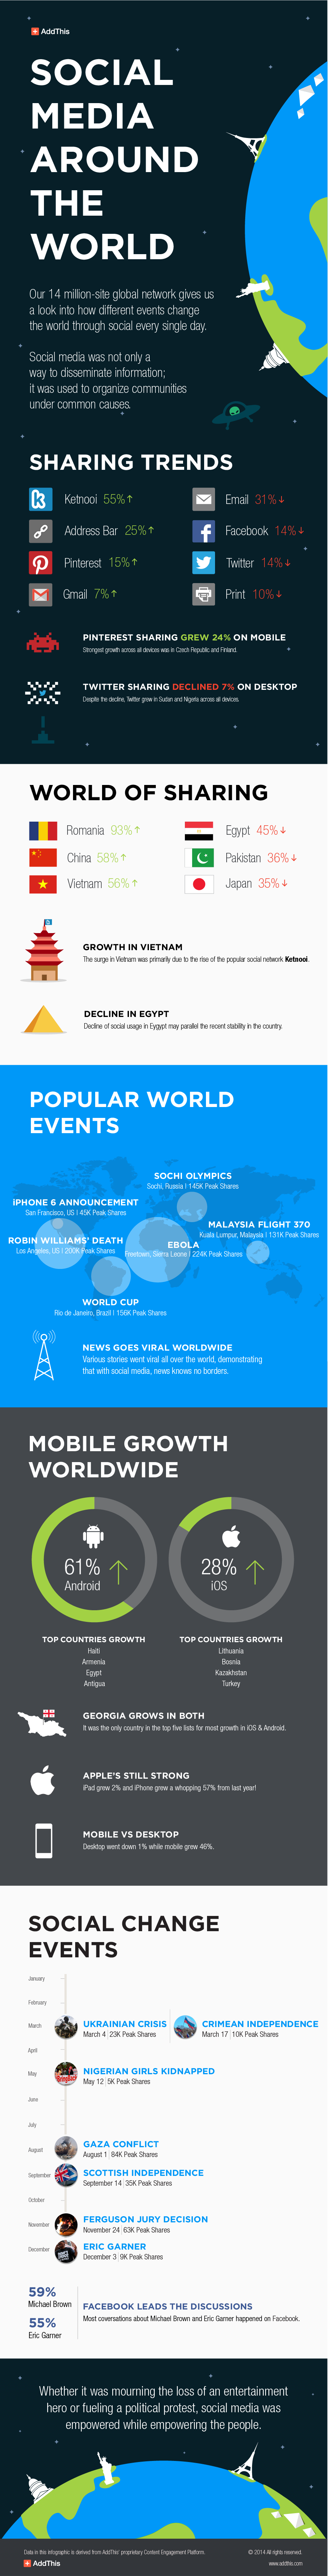 social media around the world blog infographic